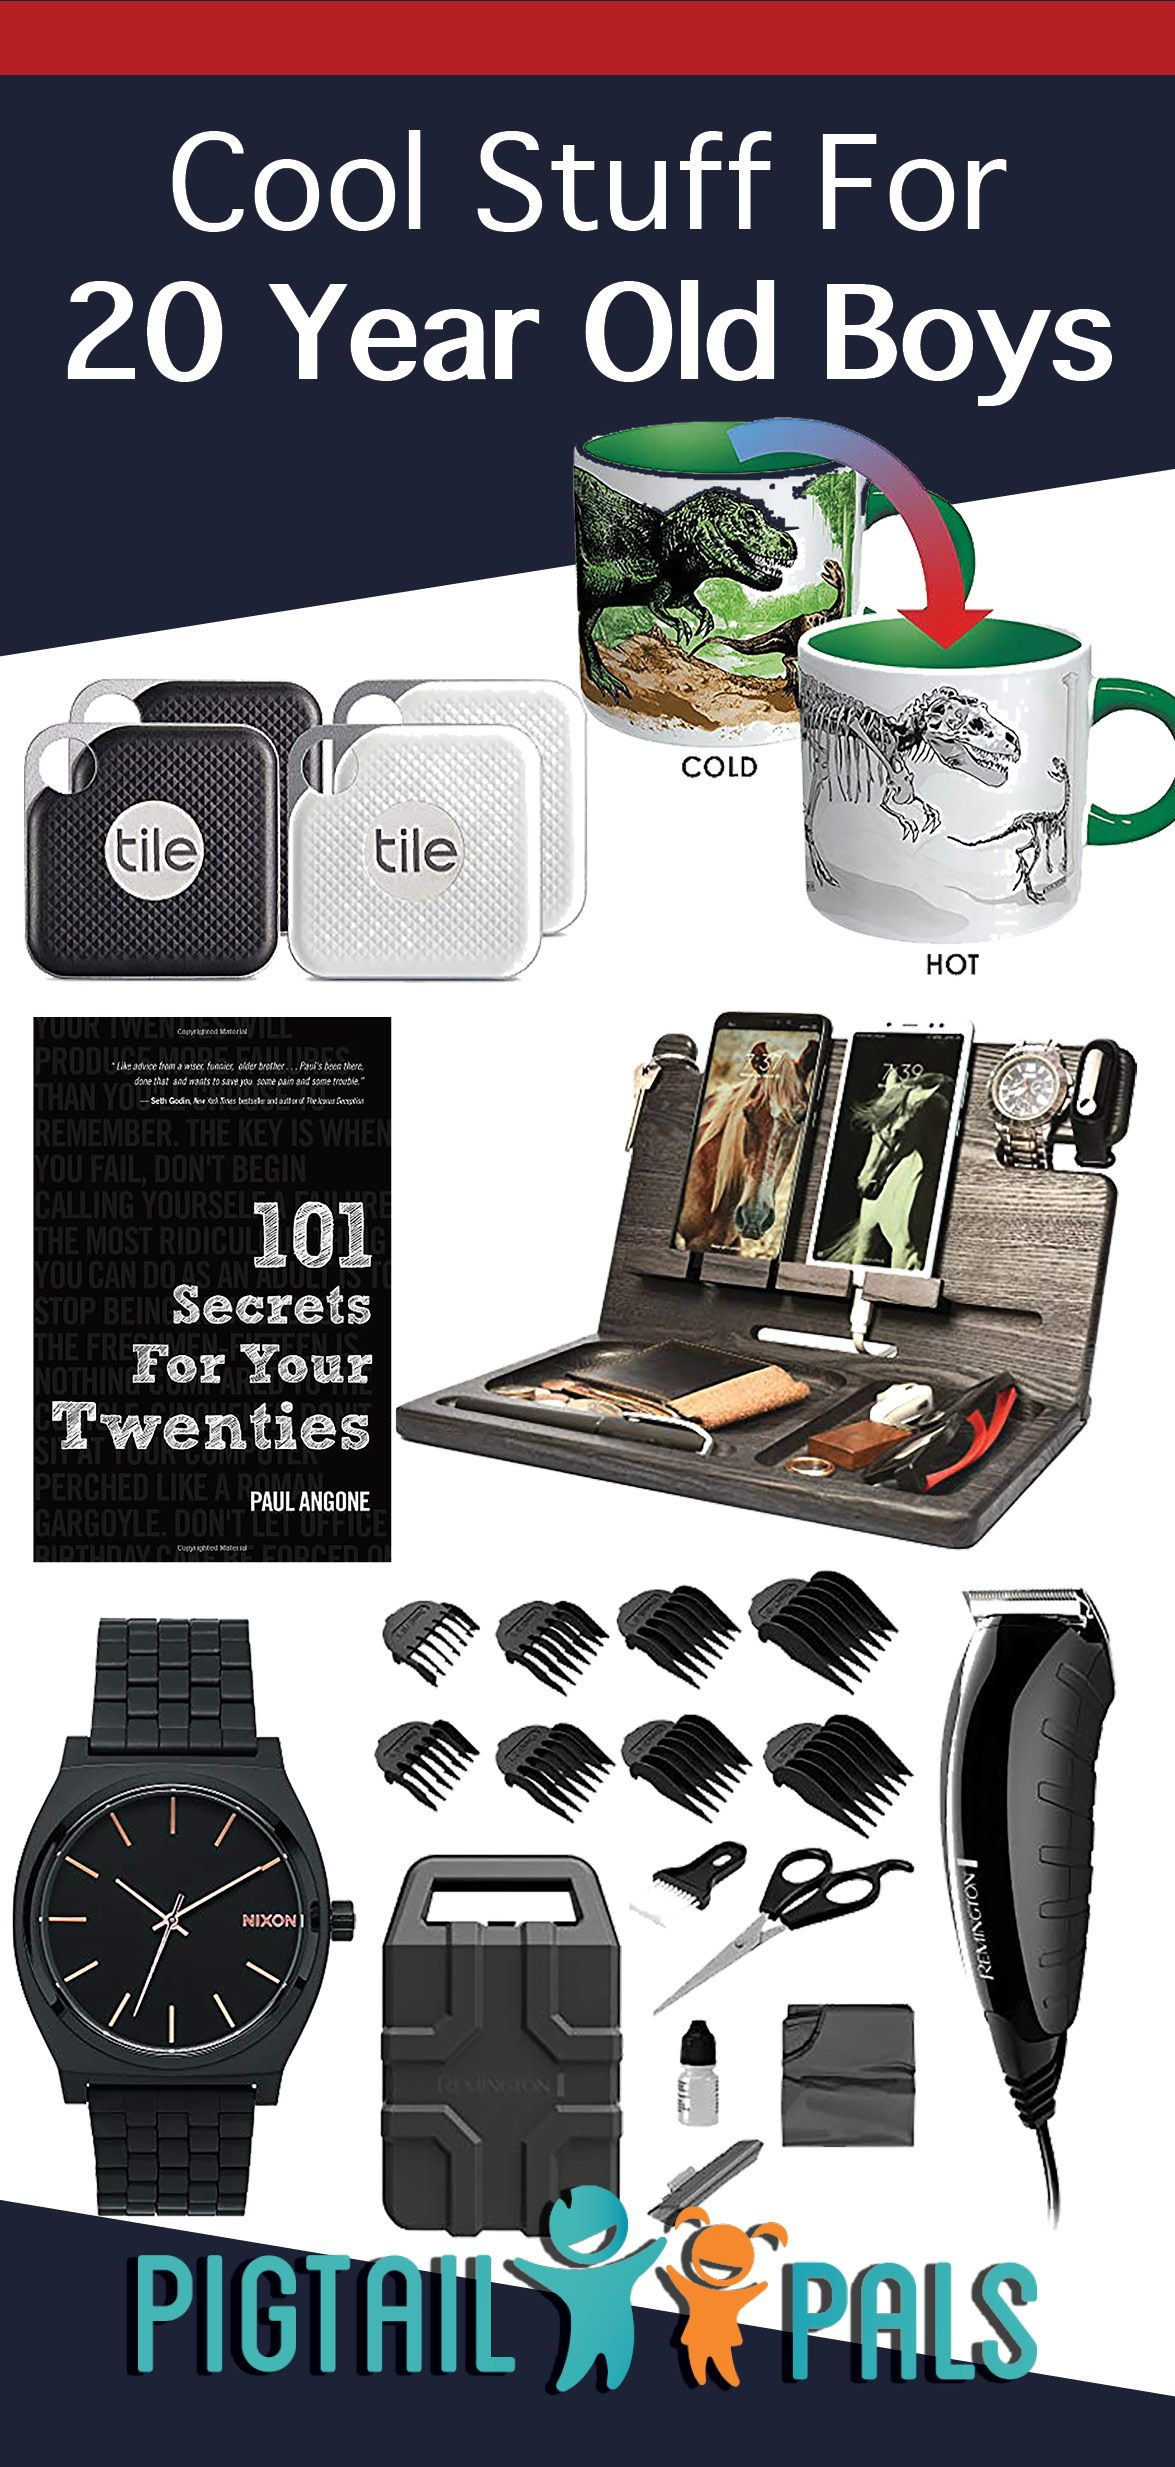 25 best gifts for 20 year old boys in 2020 in 2020 best